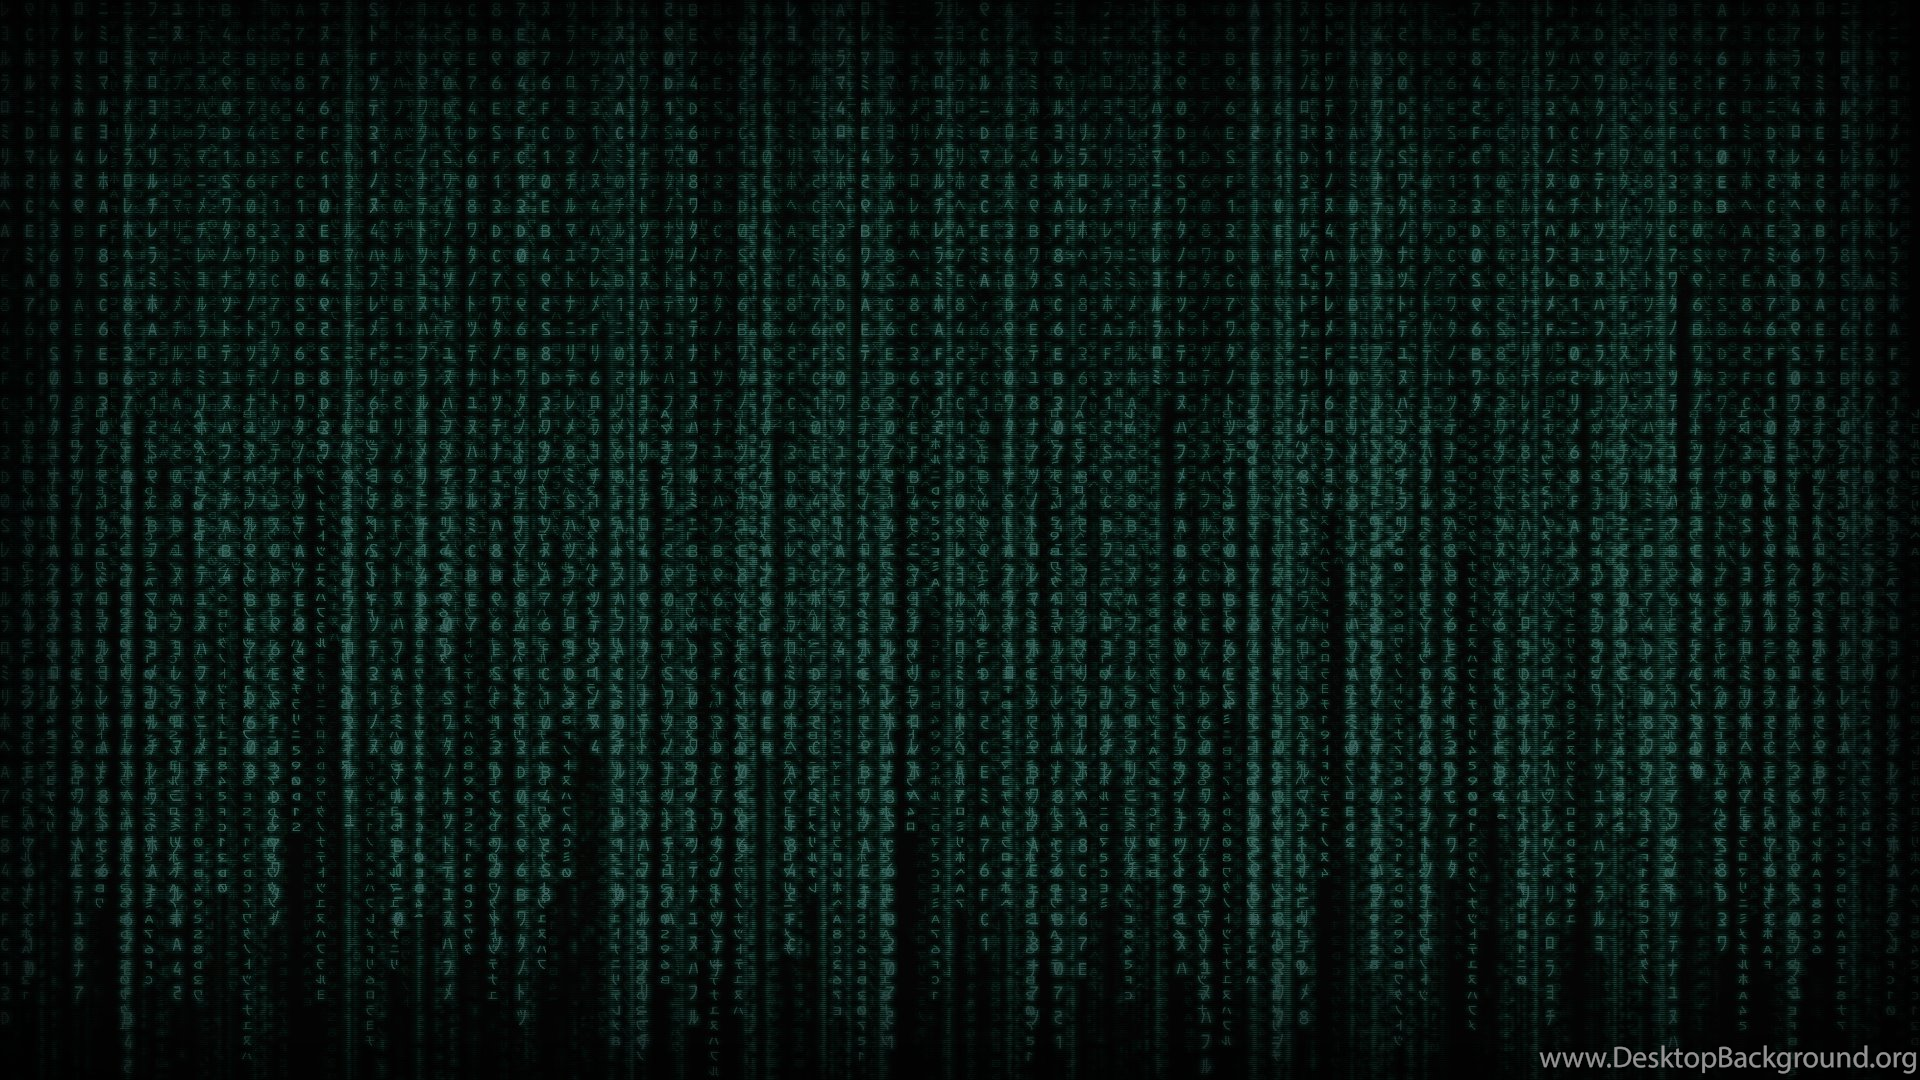 matrix wallpapers — free full hd wallpaper. widescreen hq desktop